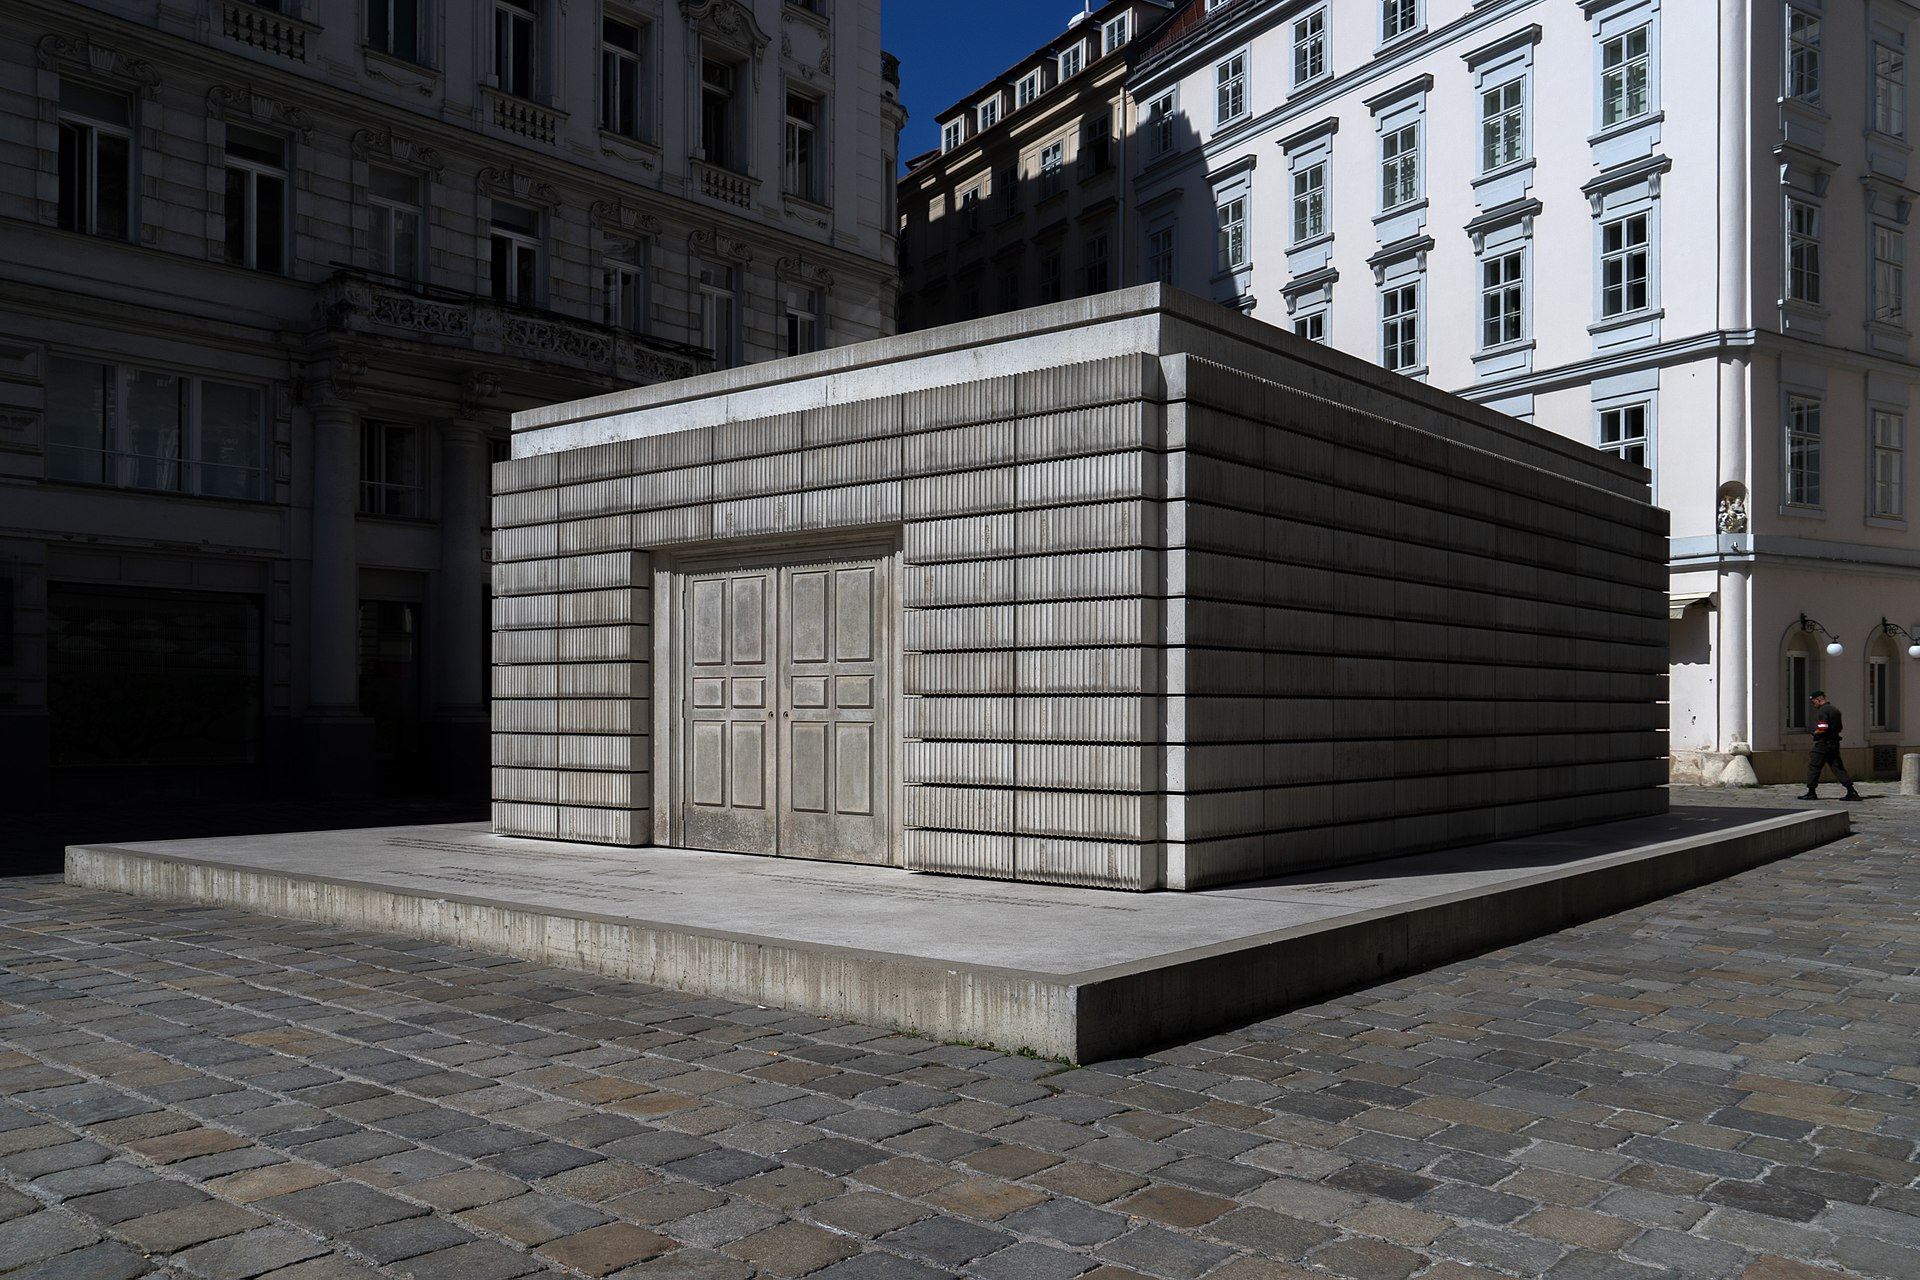 Judenplatz Holocaust Memorial in Vienna, Austria